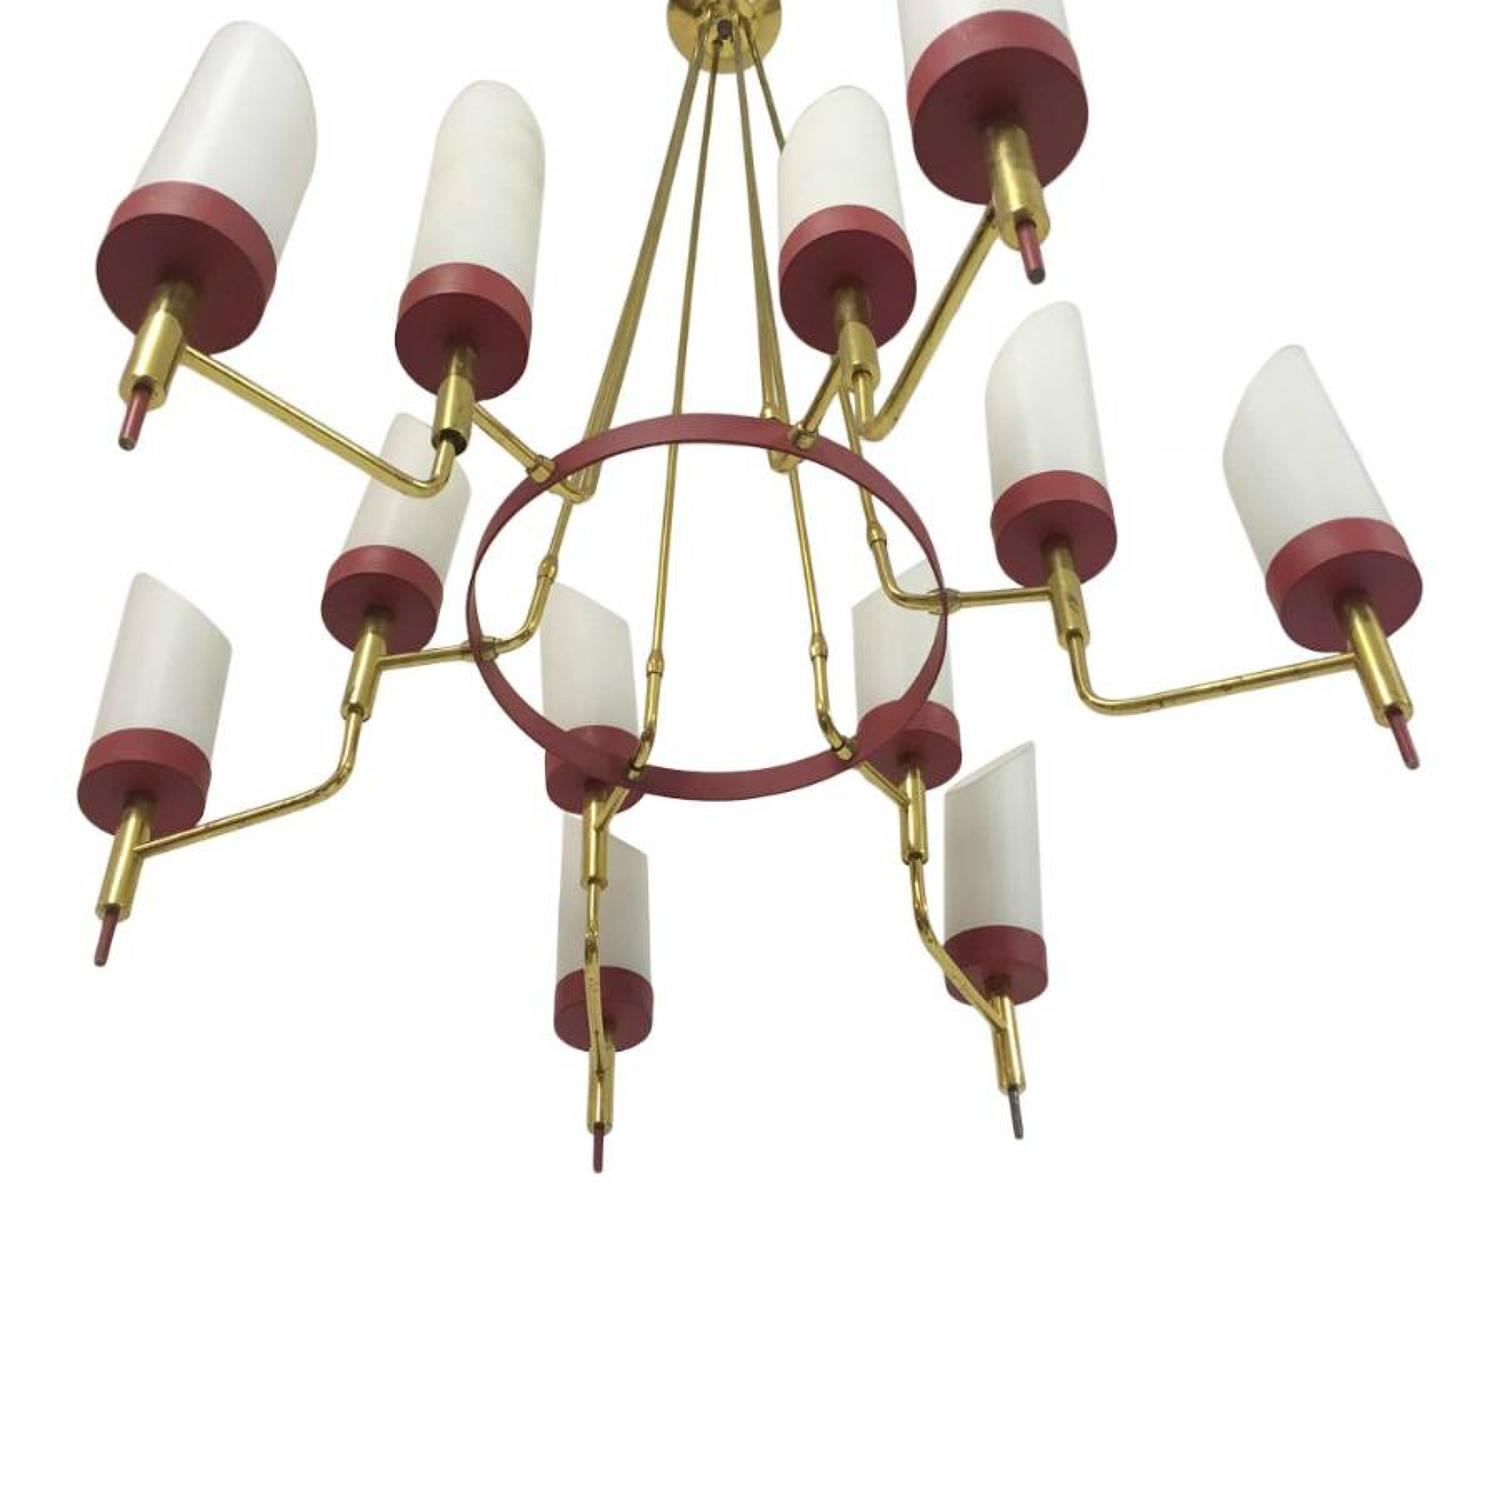 1950s Italian brass and white glass chandelier